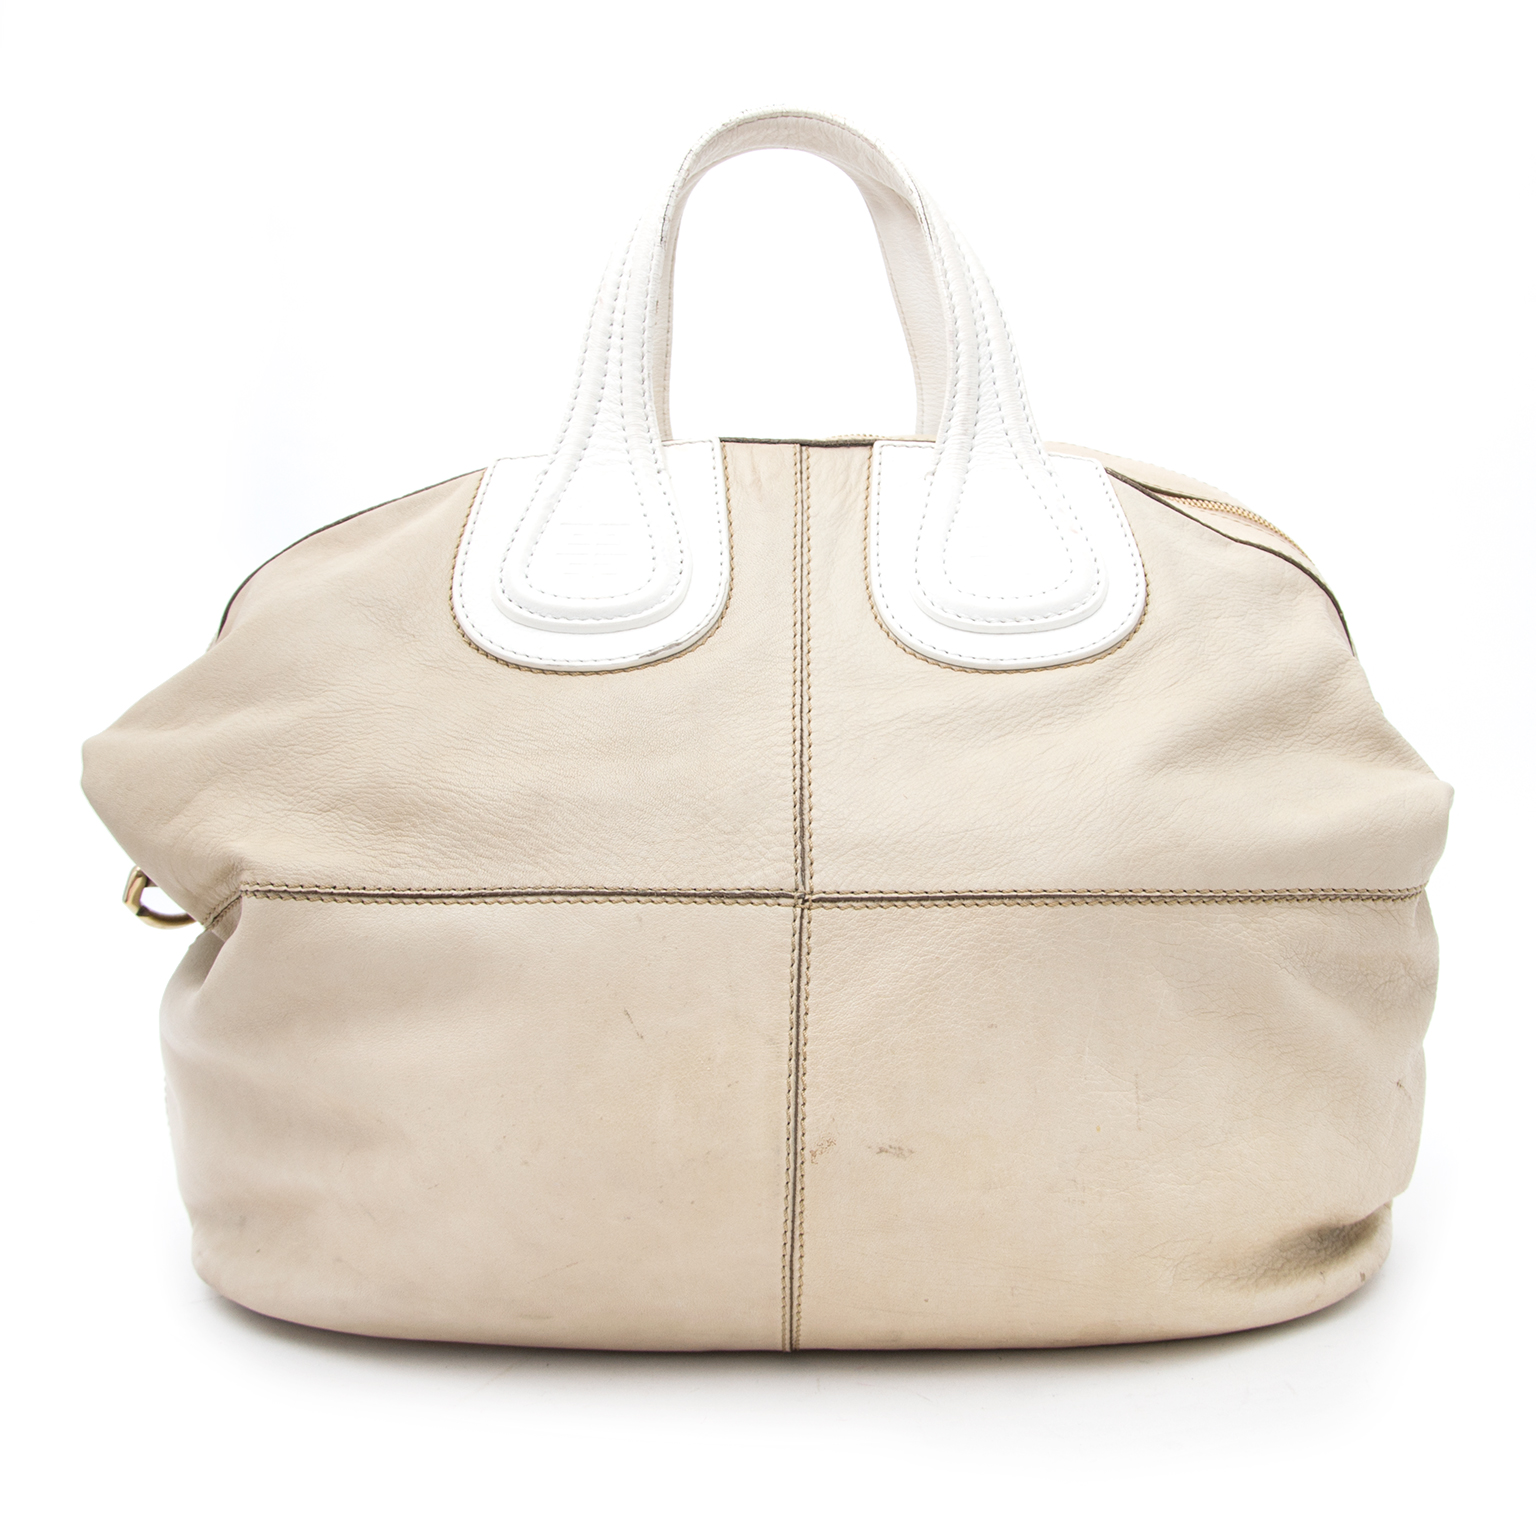 Looking for a Givenchy Beige Nightingale Bag?